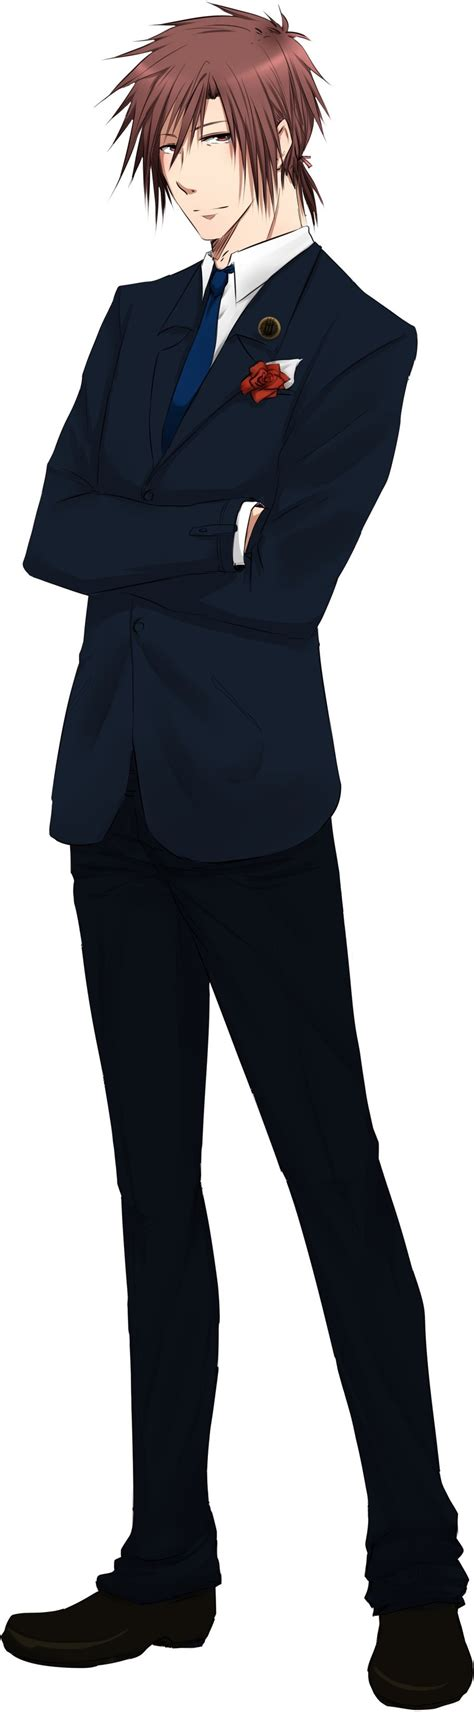 Mz Formal Attire By Timecompass On Deviantart Anime Boy In Suit Drawing Free